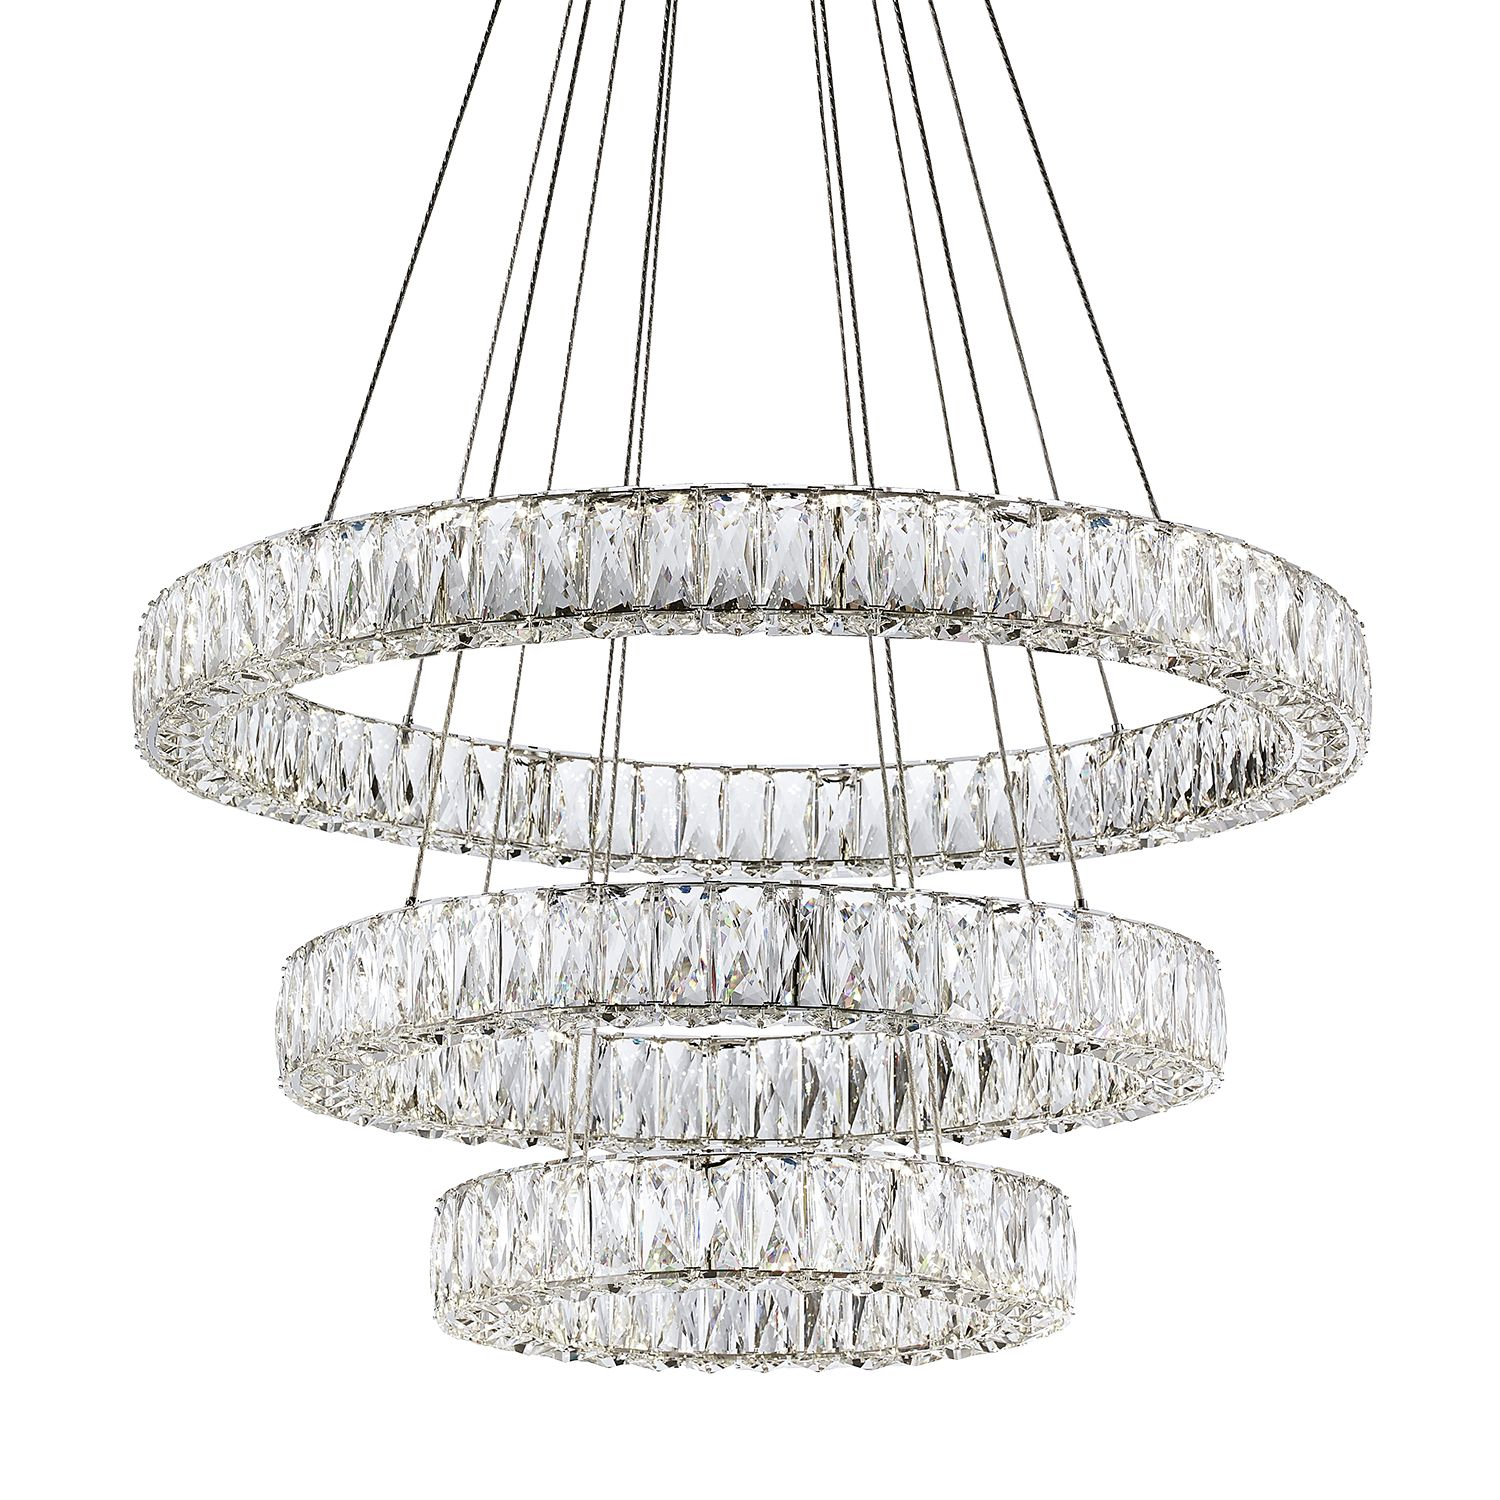 Solaris Three Ring Chandelier Features Three Rings In Different Sizes Which Can Be Styled In A Variet Led Chandelier Chrome Chandeliers Contemporary Chandelier